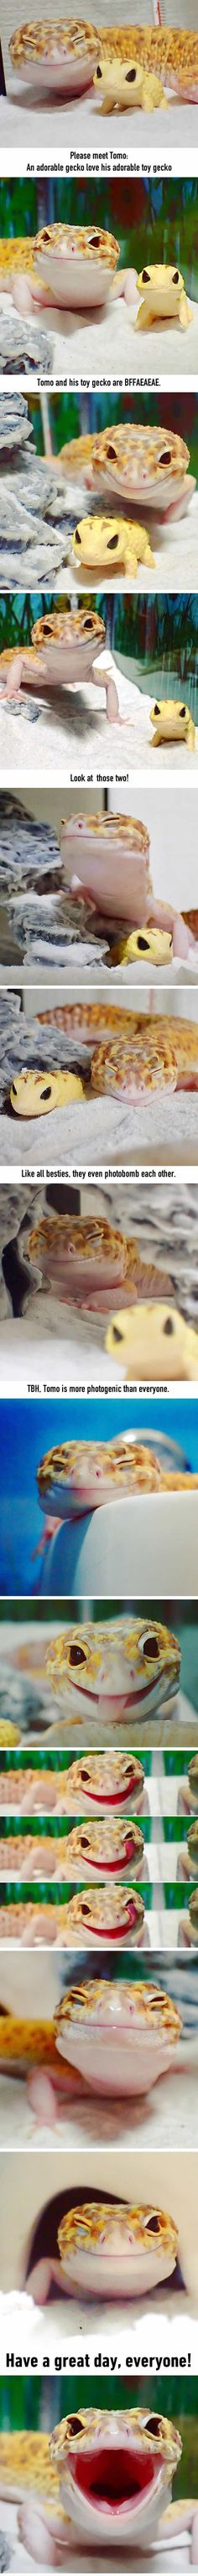 Funny Pictures Of An Adorable Gecko Love His Toy Cute Funny Animals, Cute Baby Animals, Funny Cute, Animals And Pets, Funny Lizards, Funniest Animals, Funny Pics, Cute Creatures, Beautiful Creatures